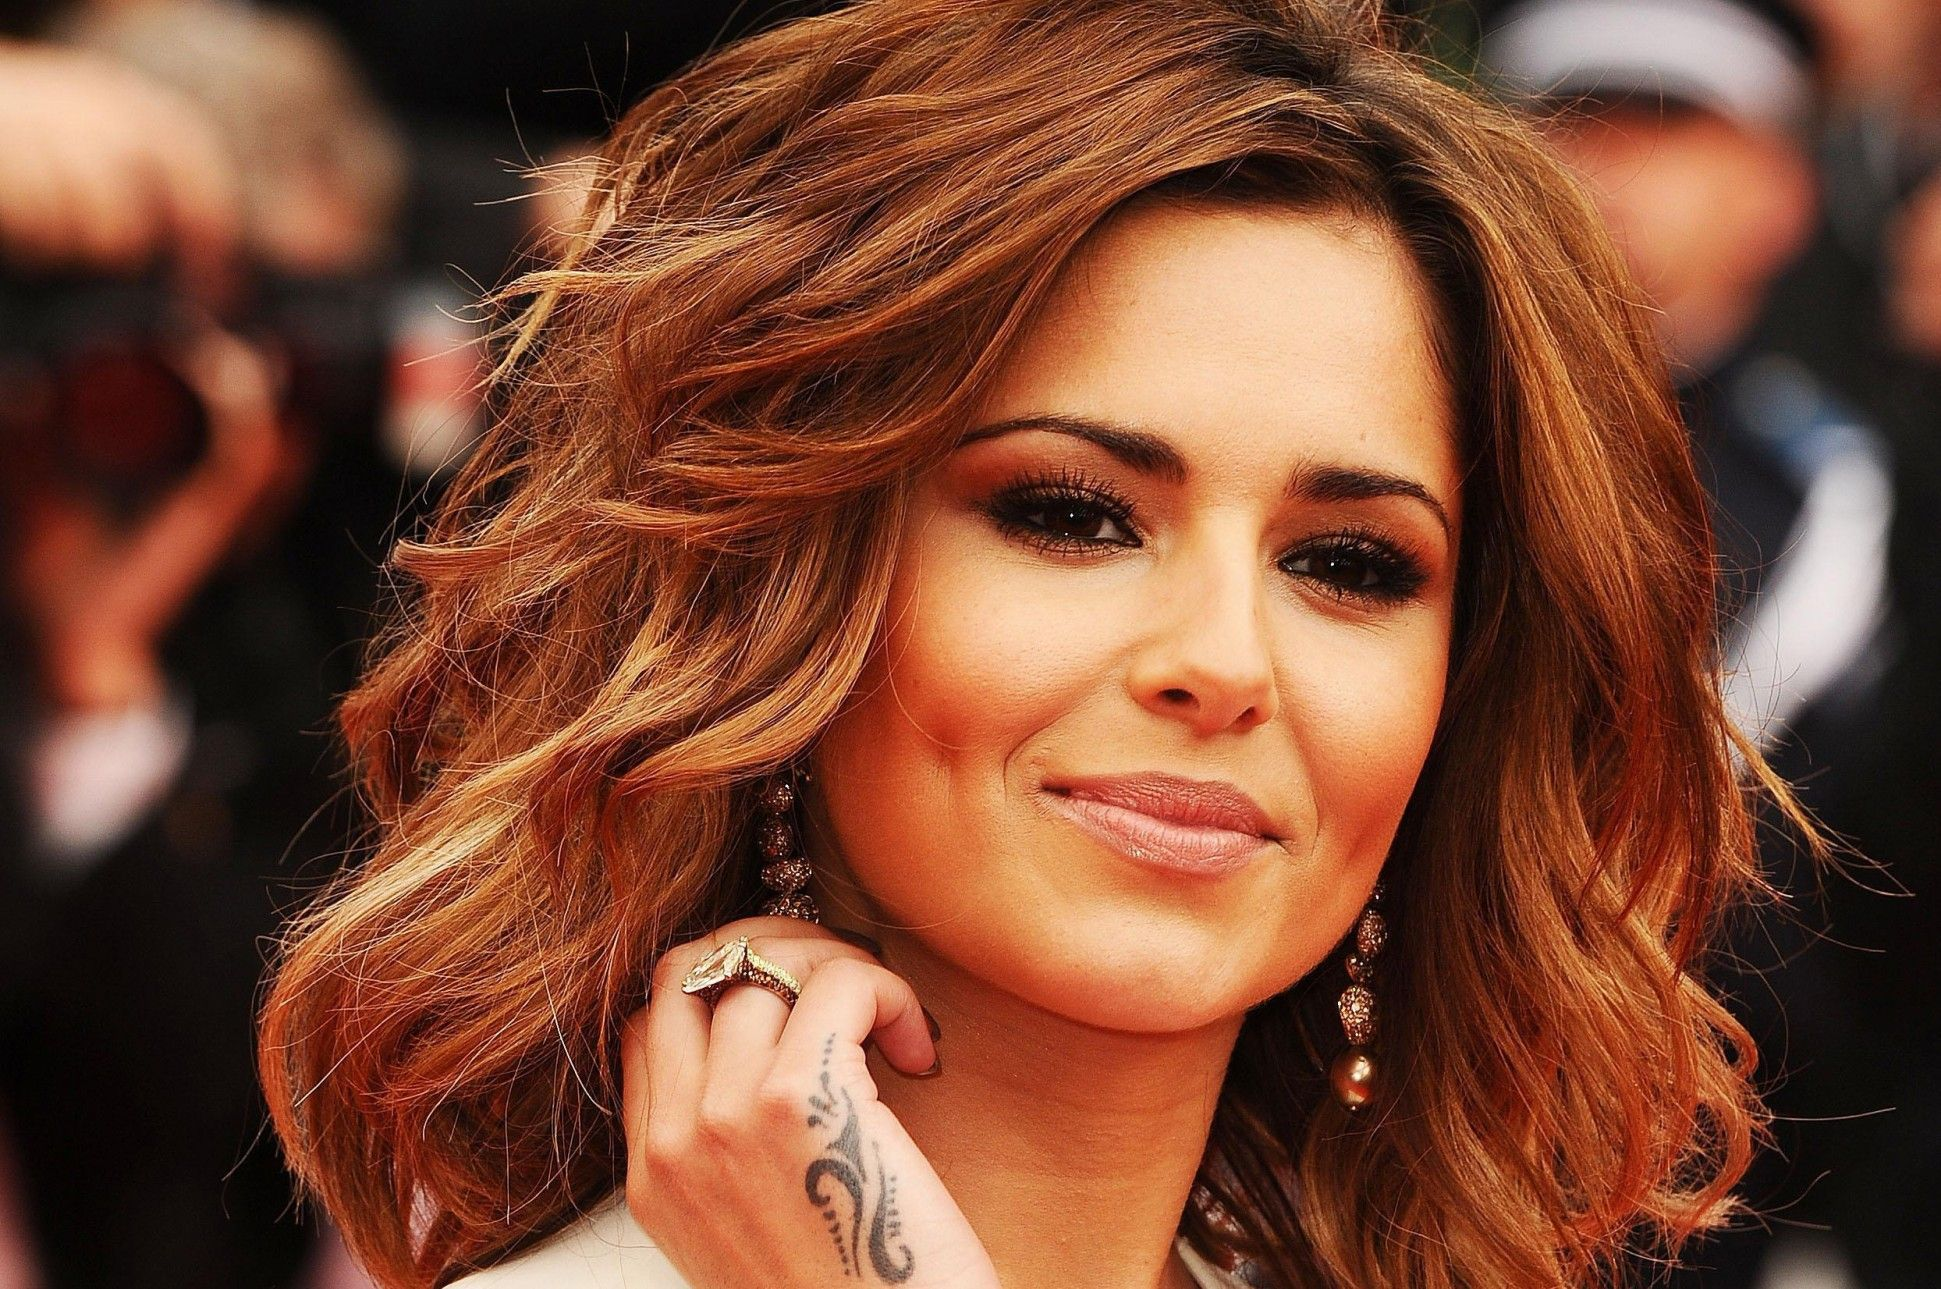 Cheryl Cole Wallpapers Backgrounds